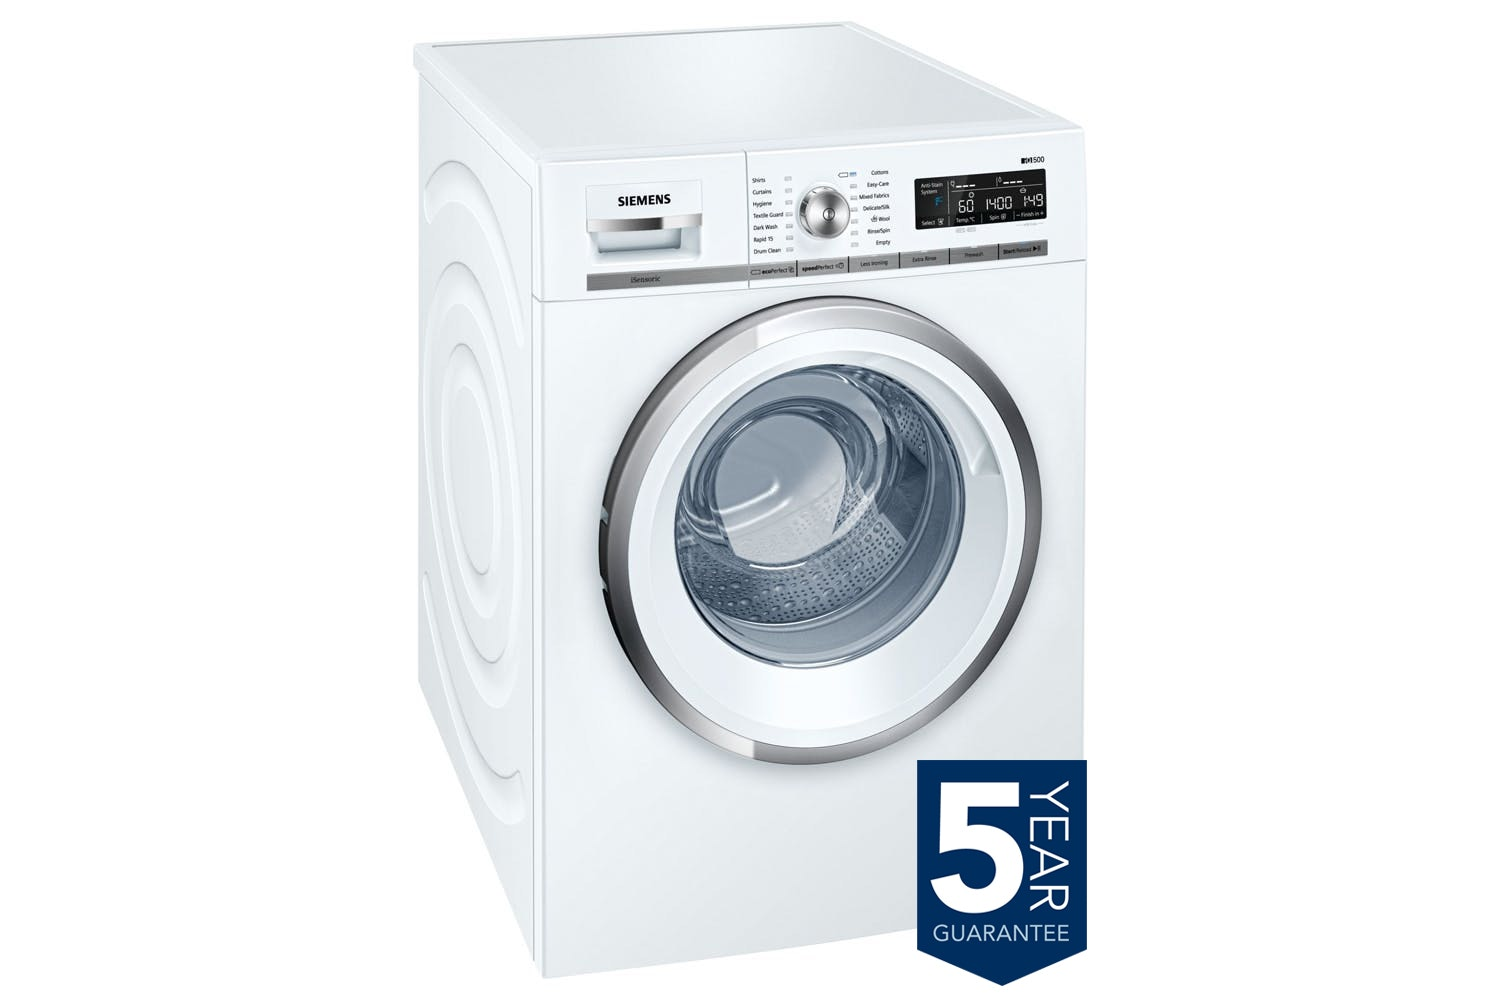 Siemens 8kg iQ500 Washing Machine | WM14W590GB